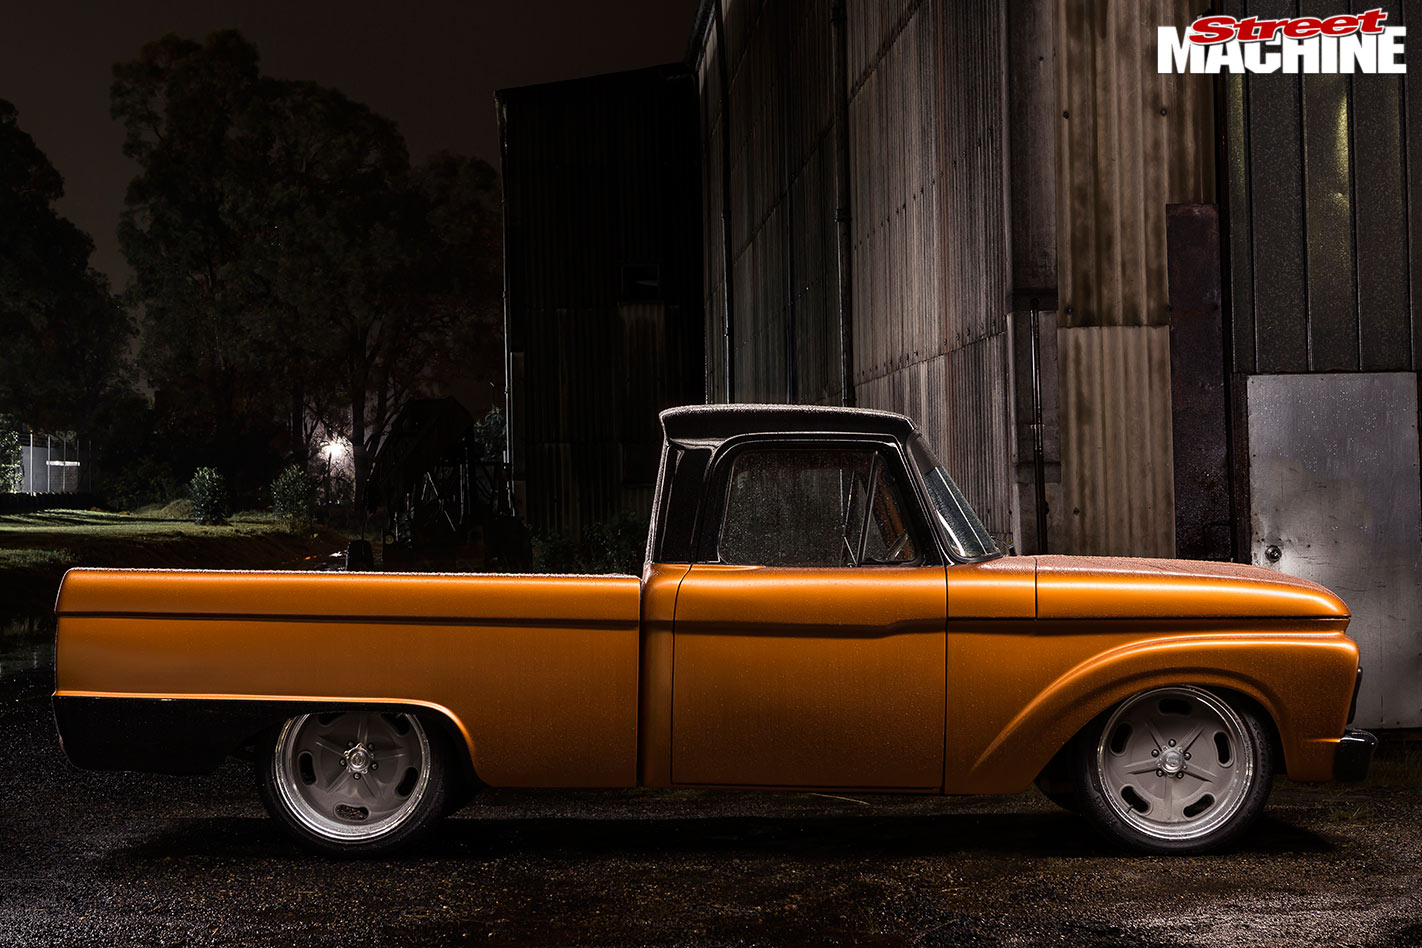 Ford F100 side